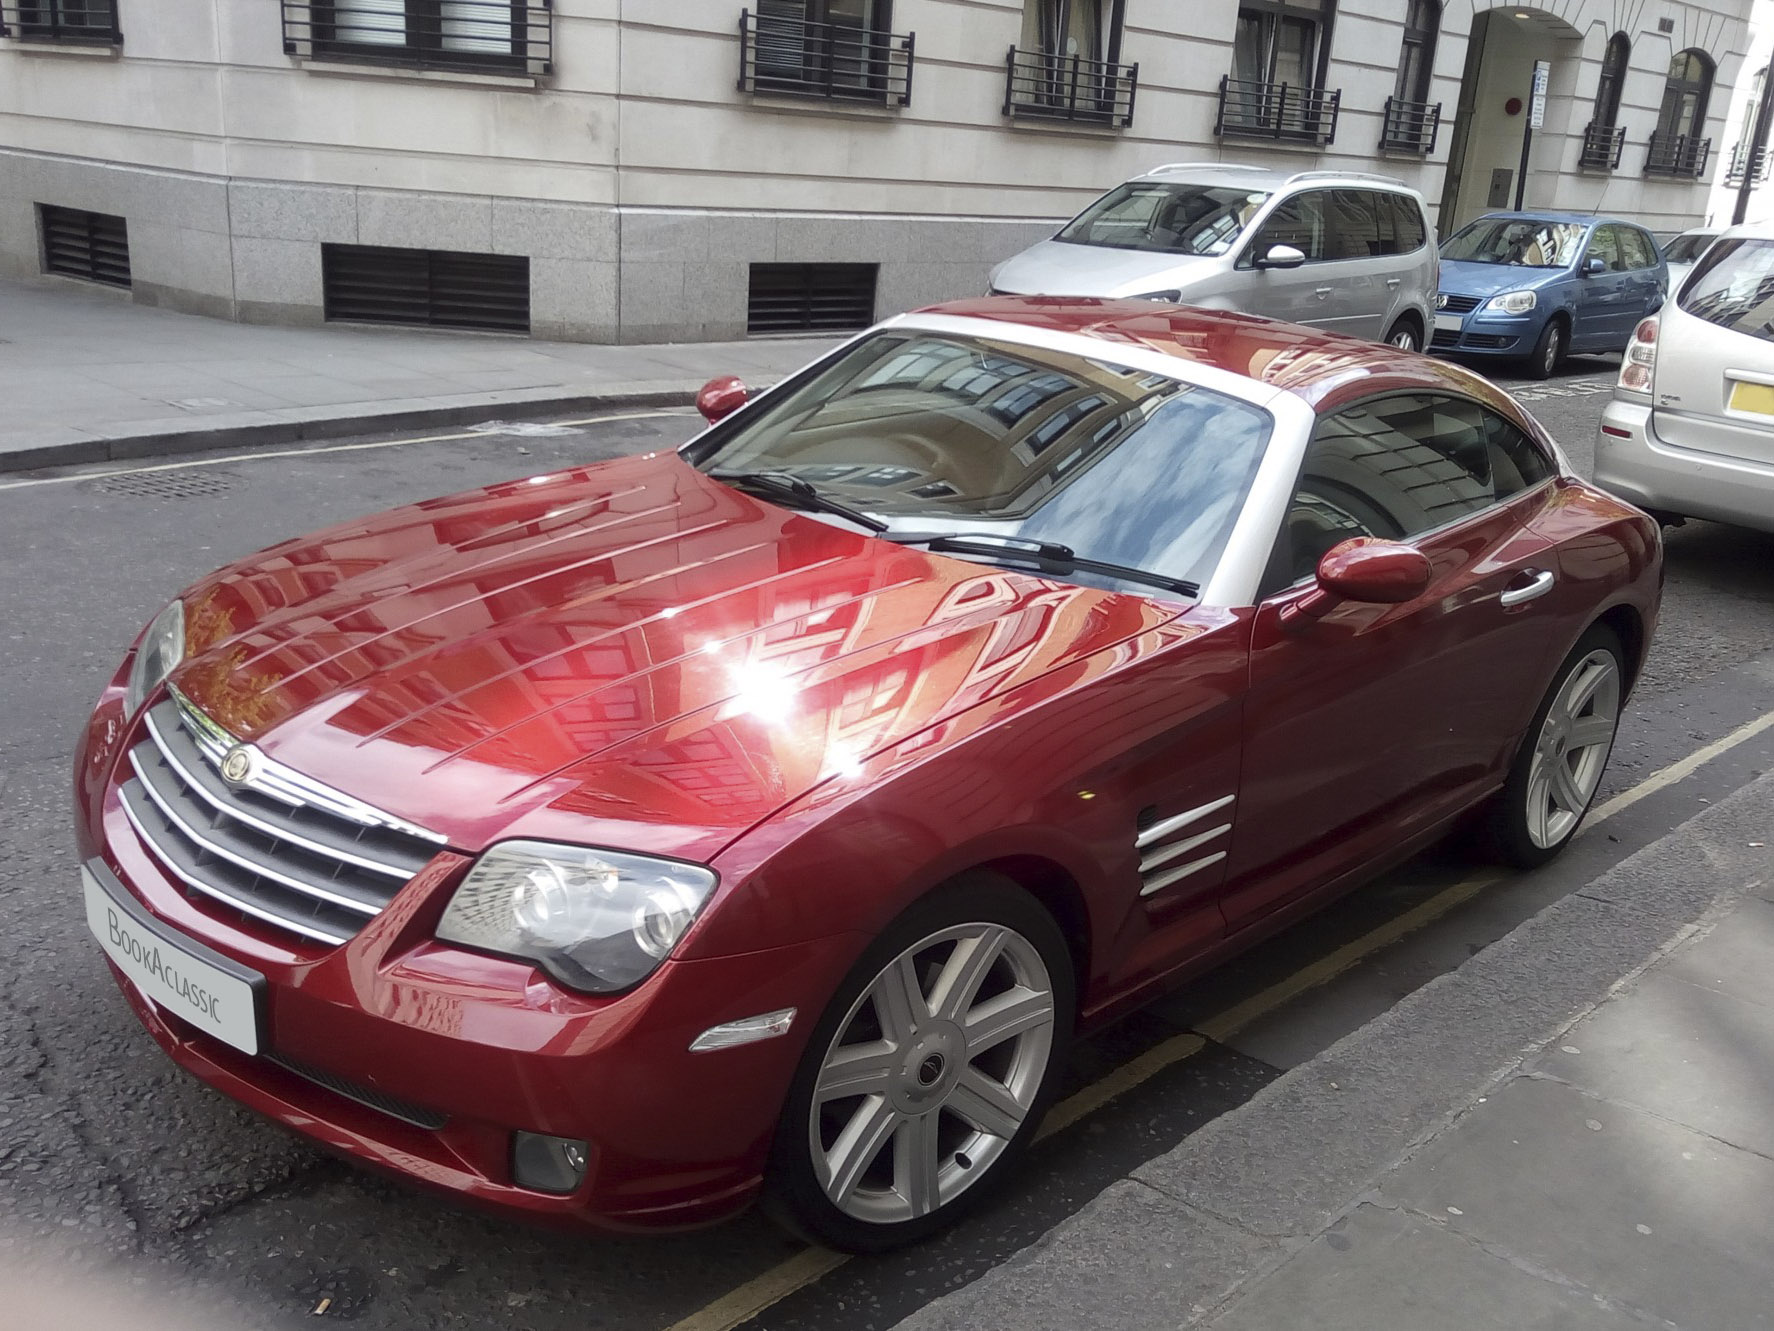 Chrysler Crossfire Hire Herts